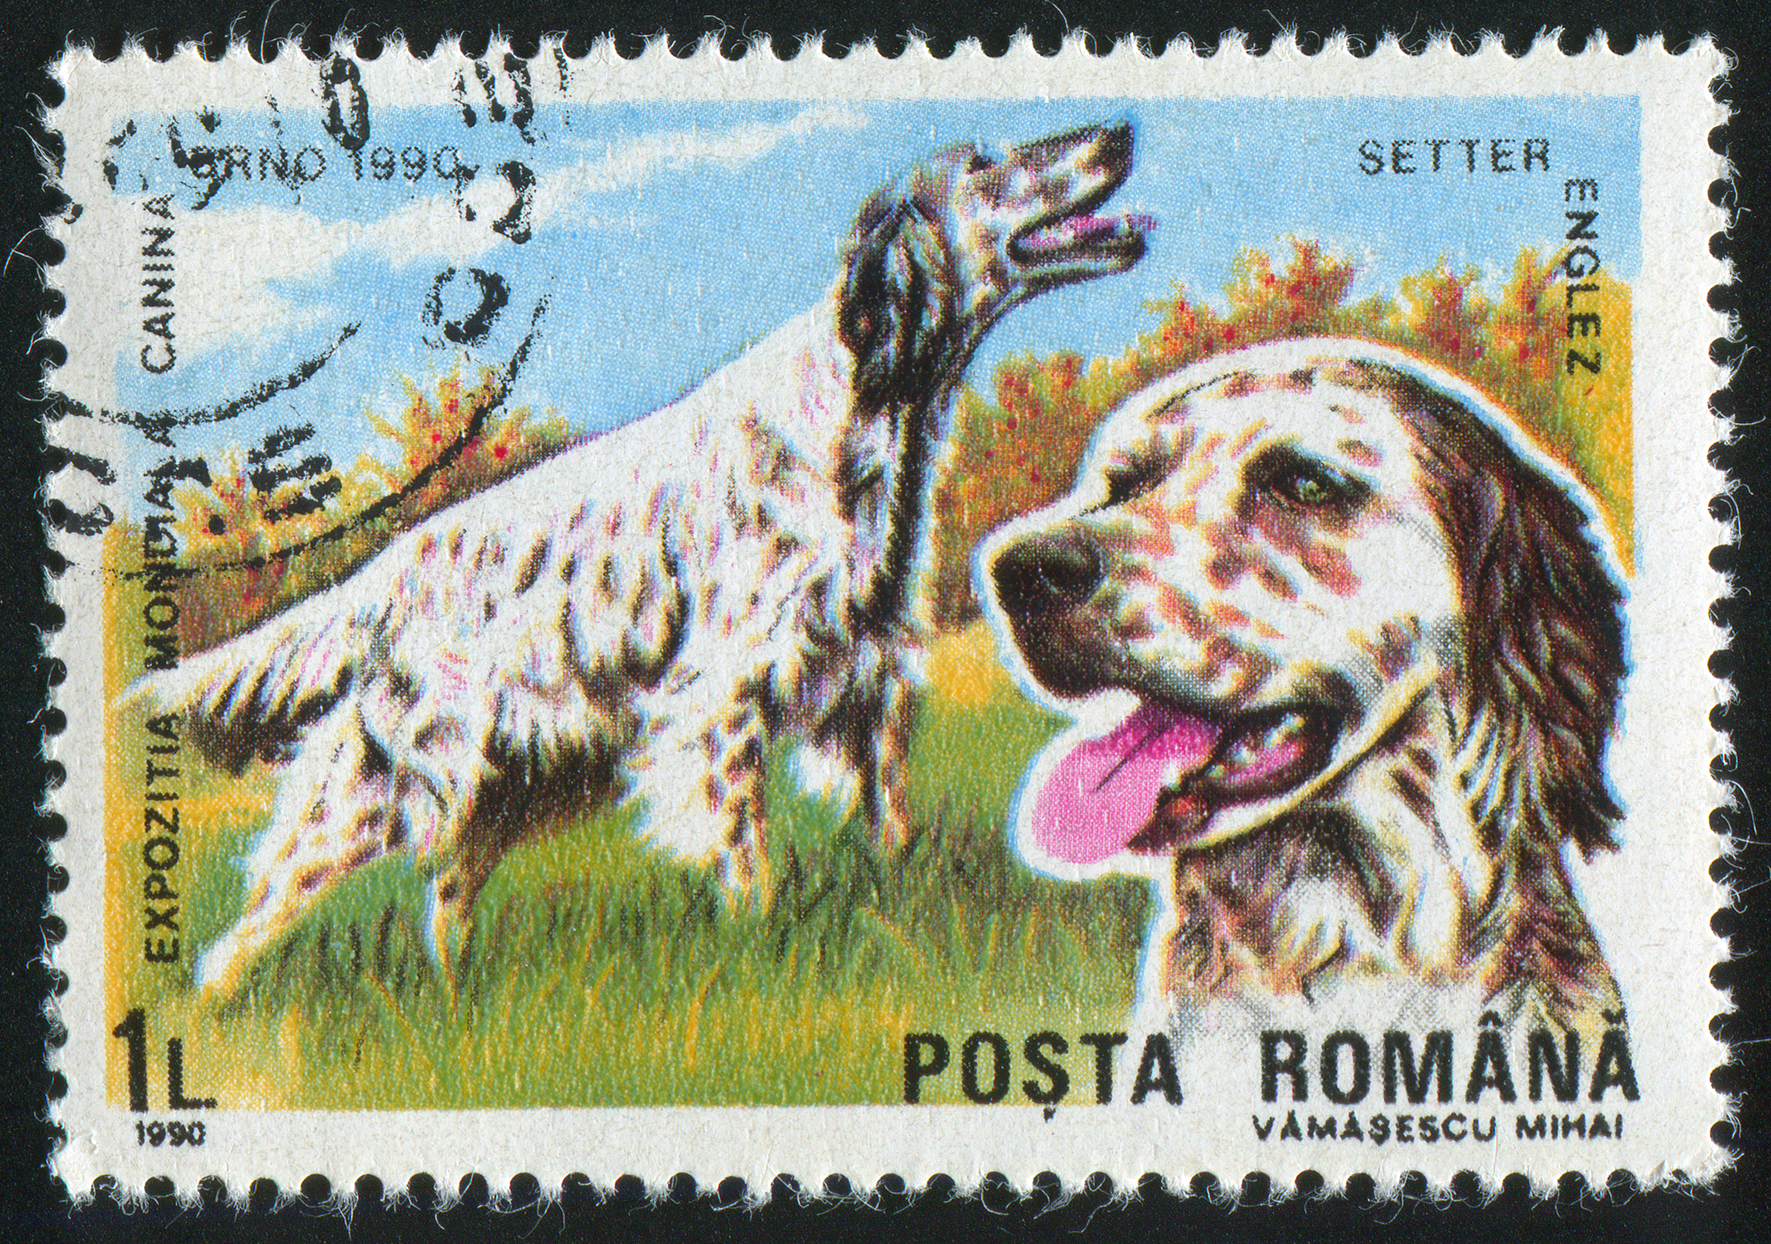 90s English Setter-featuring postage stamp